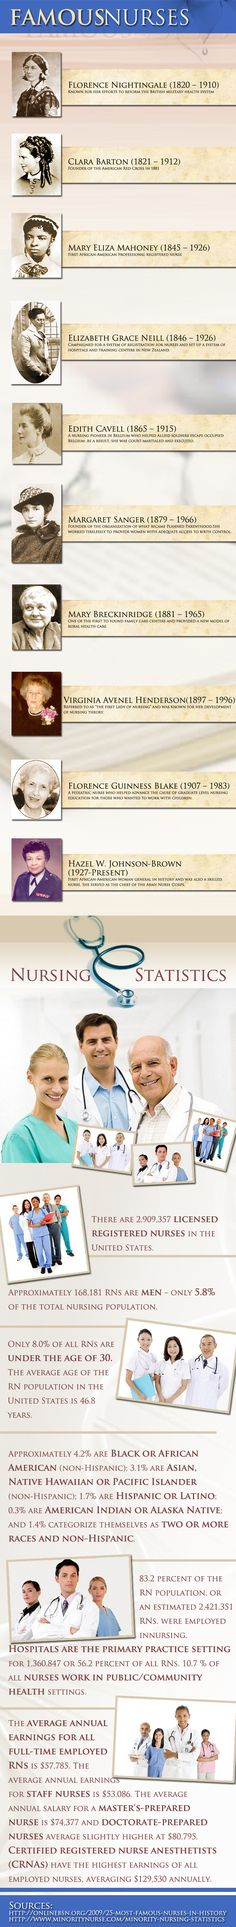 All about nurses